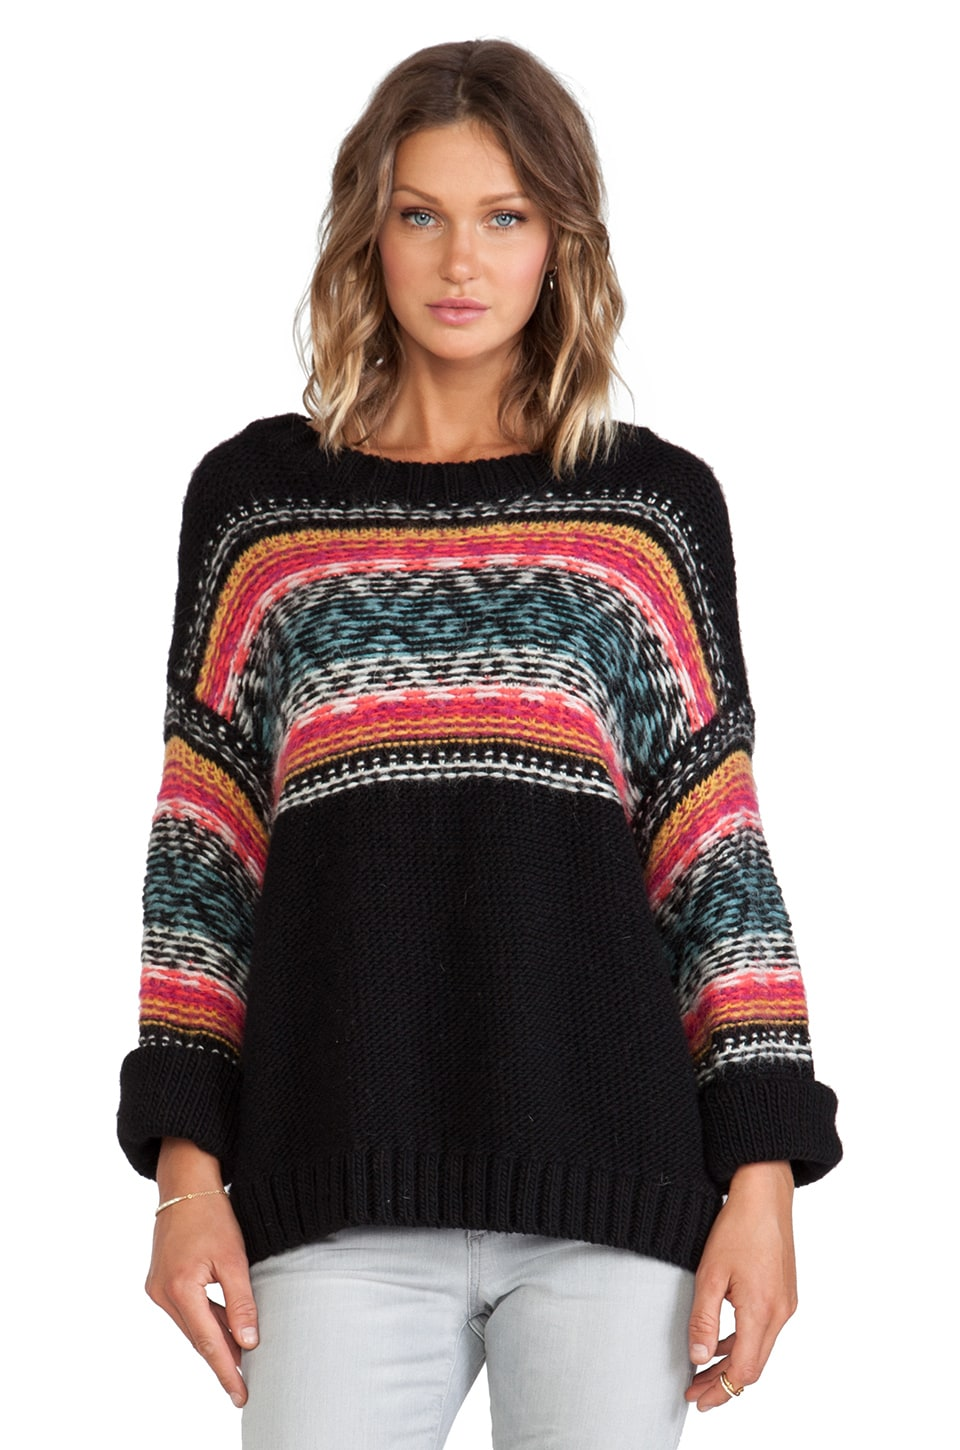 Essentiel Antwerp Hypsetter Sweater in Black